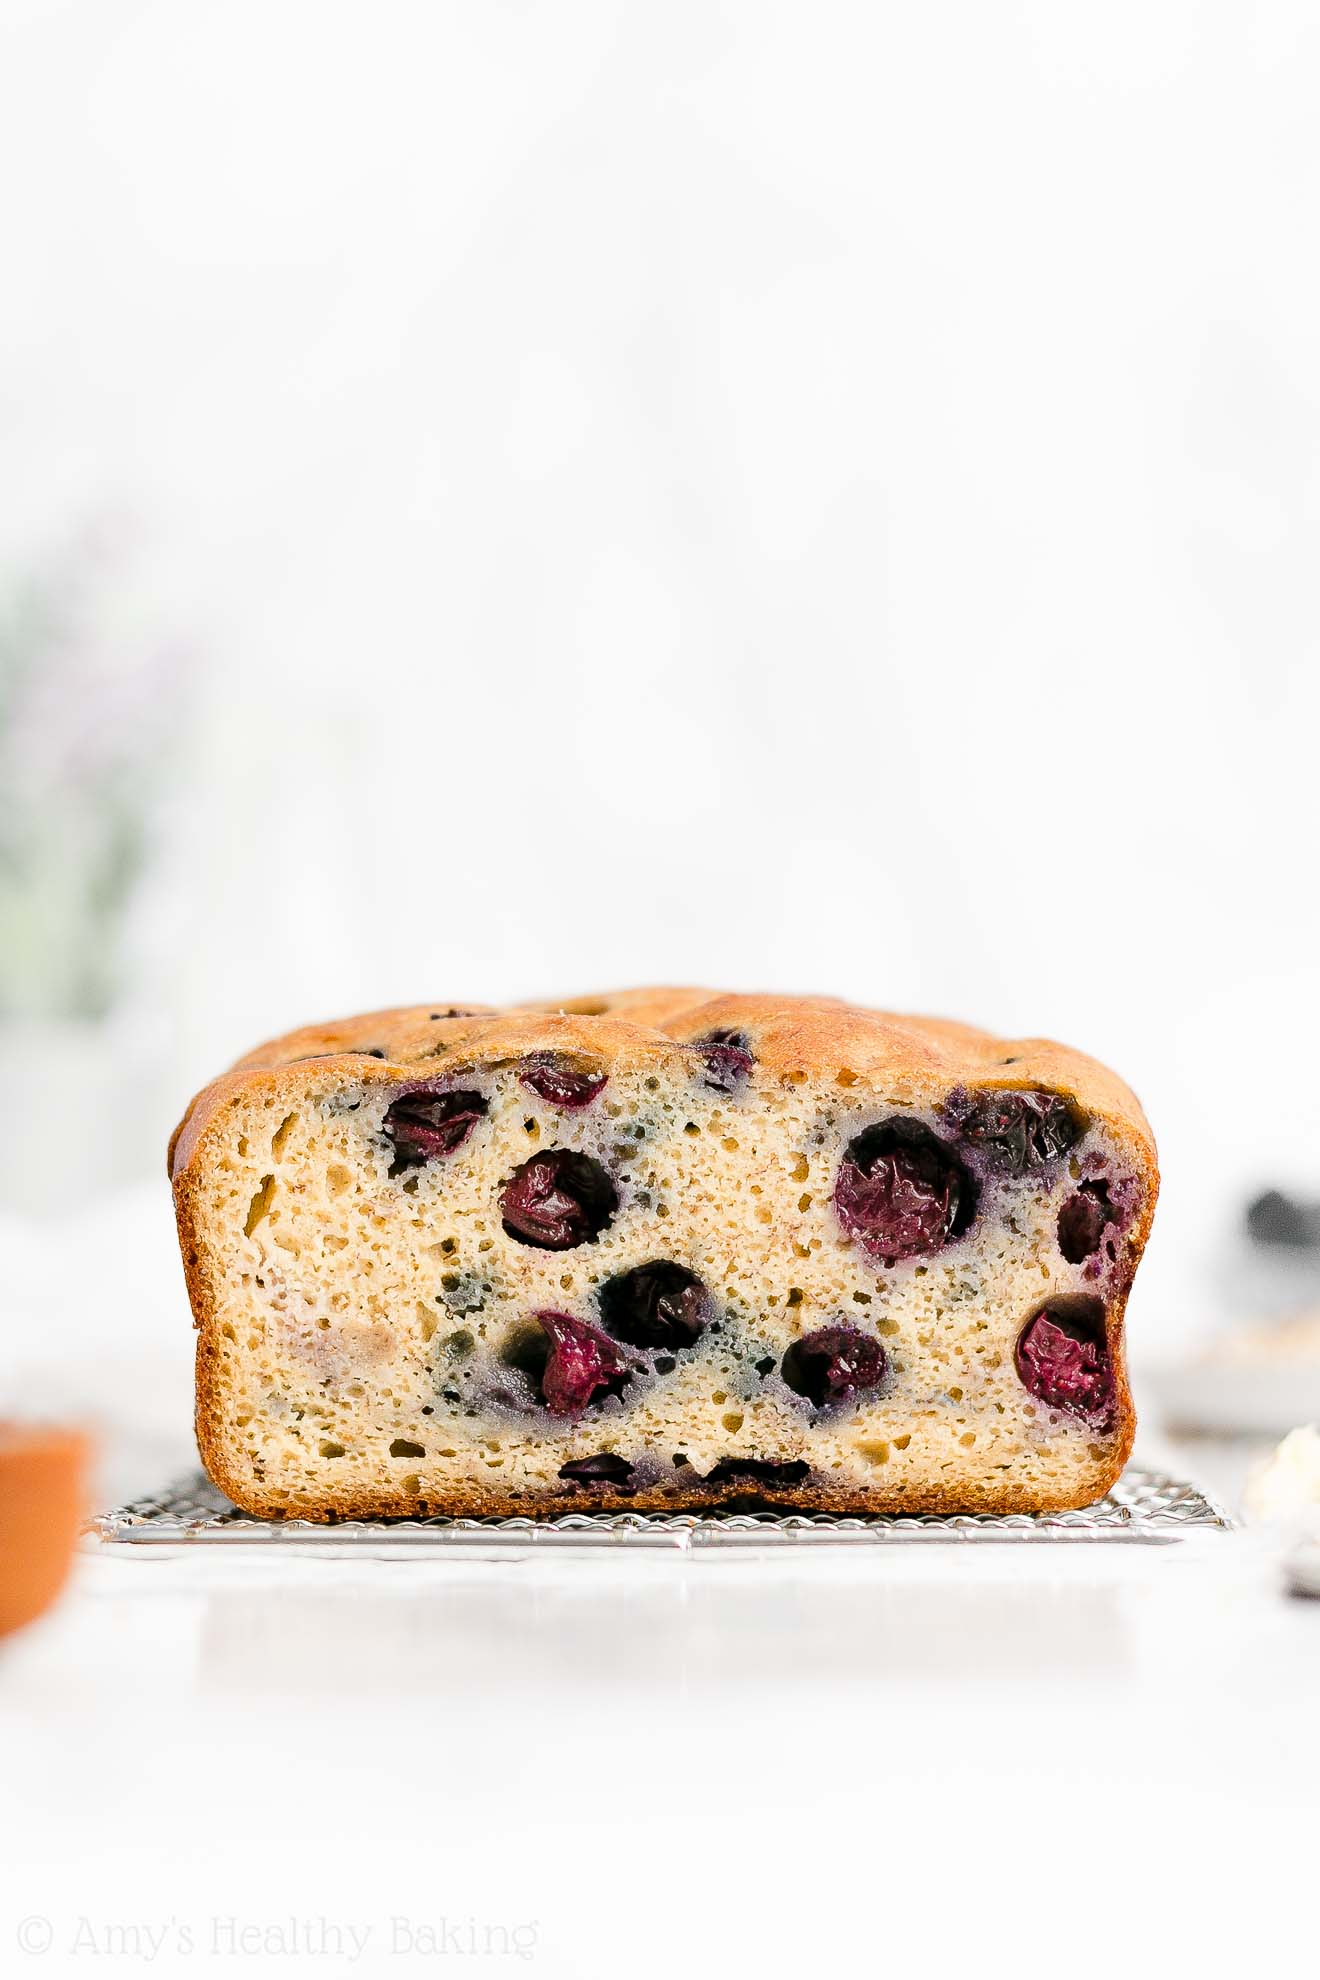 Easy Healthy Clean Eating Whole Wheat Moist Blueberry Almond Banana Bread